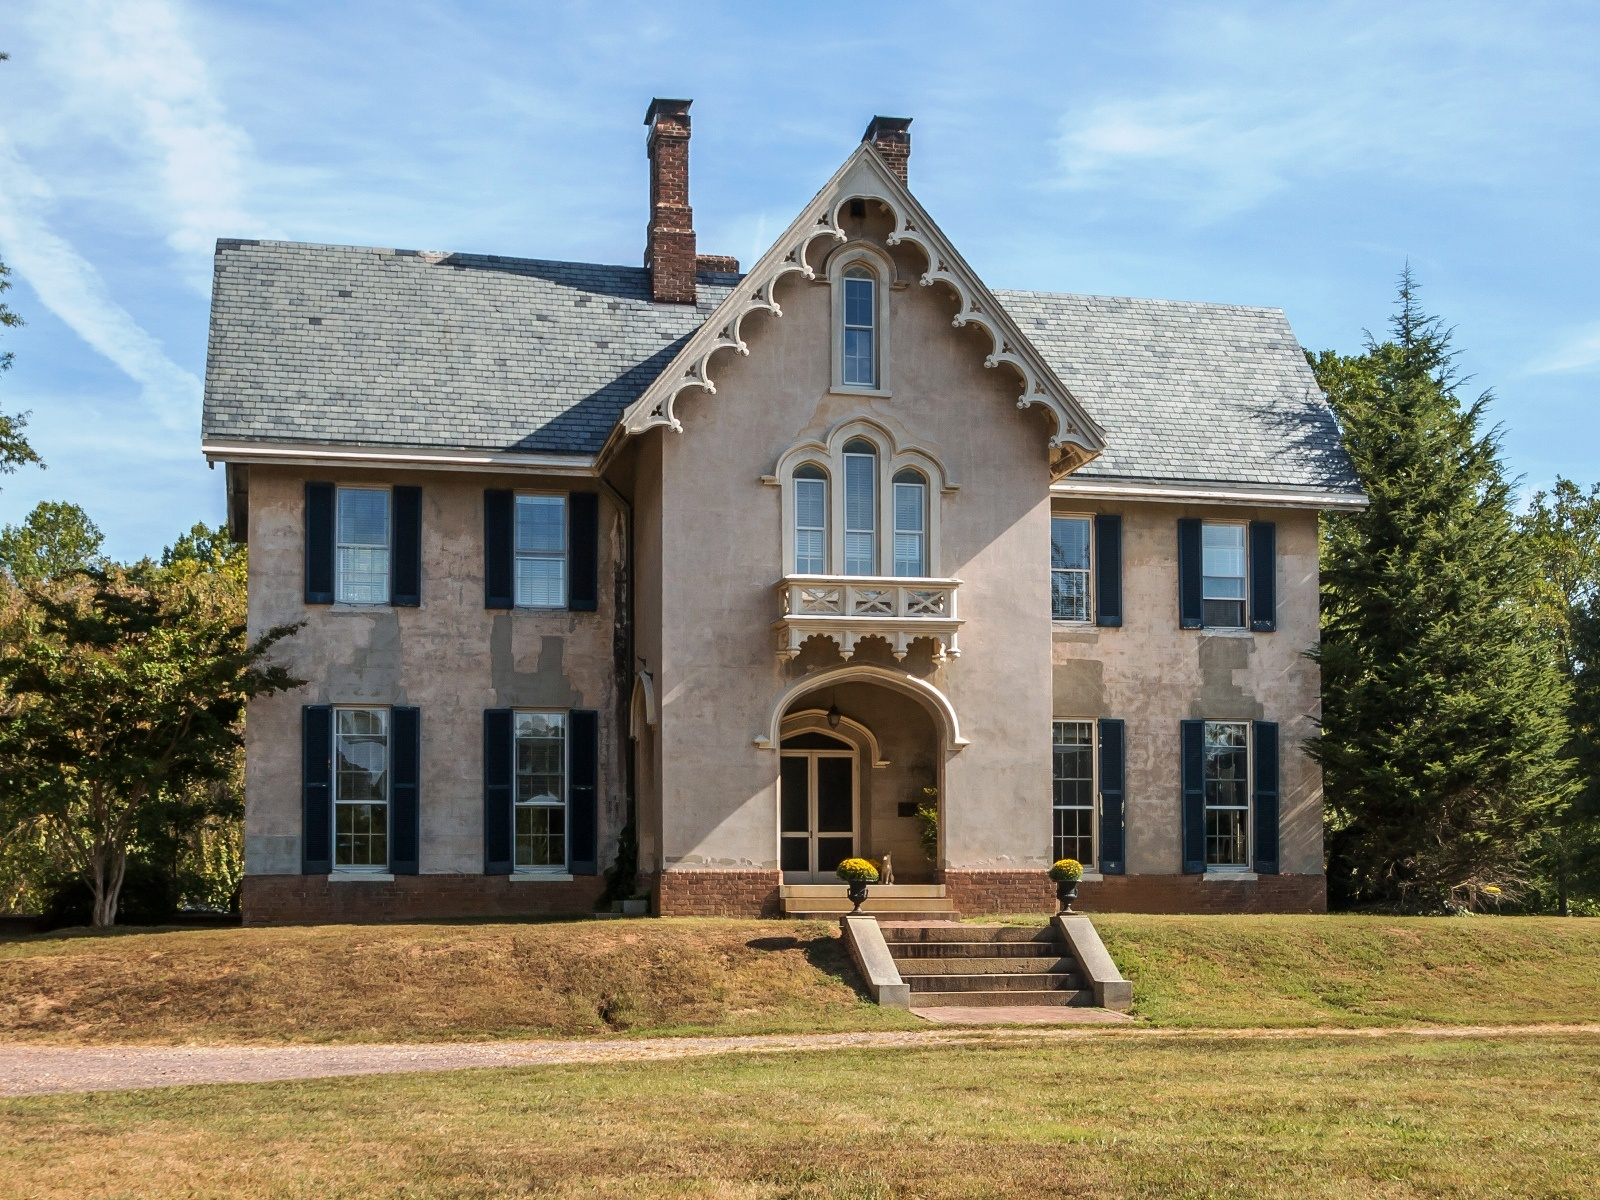 Home architecture 101 gothic revival Architectural home builders